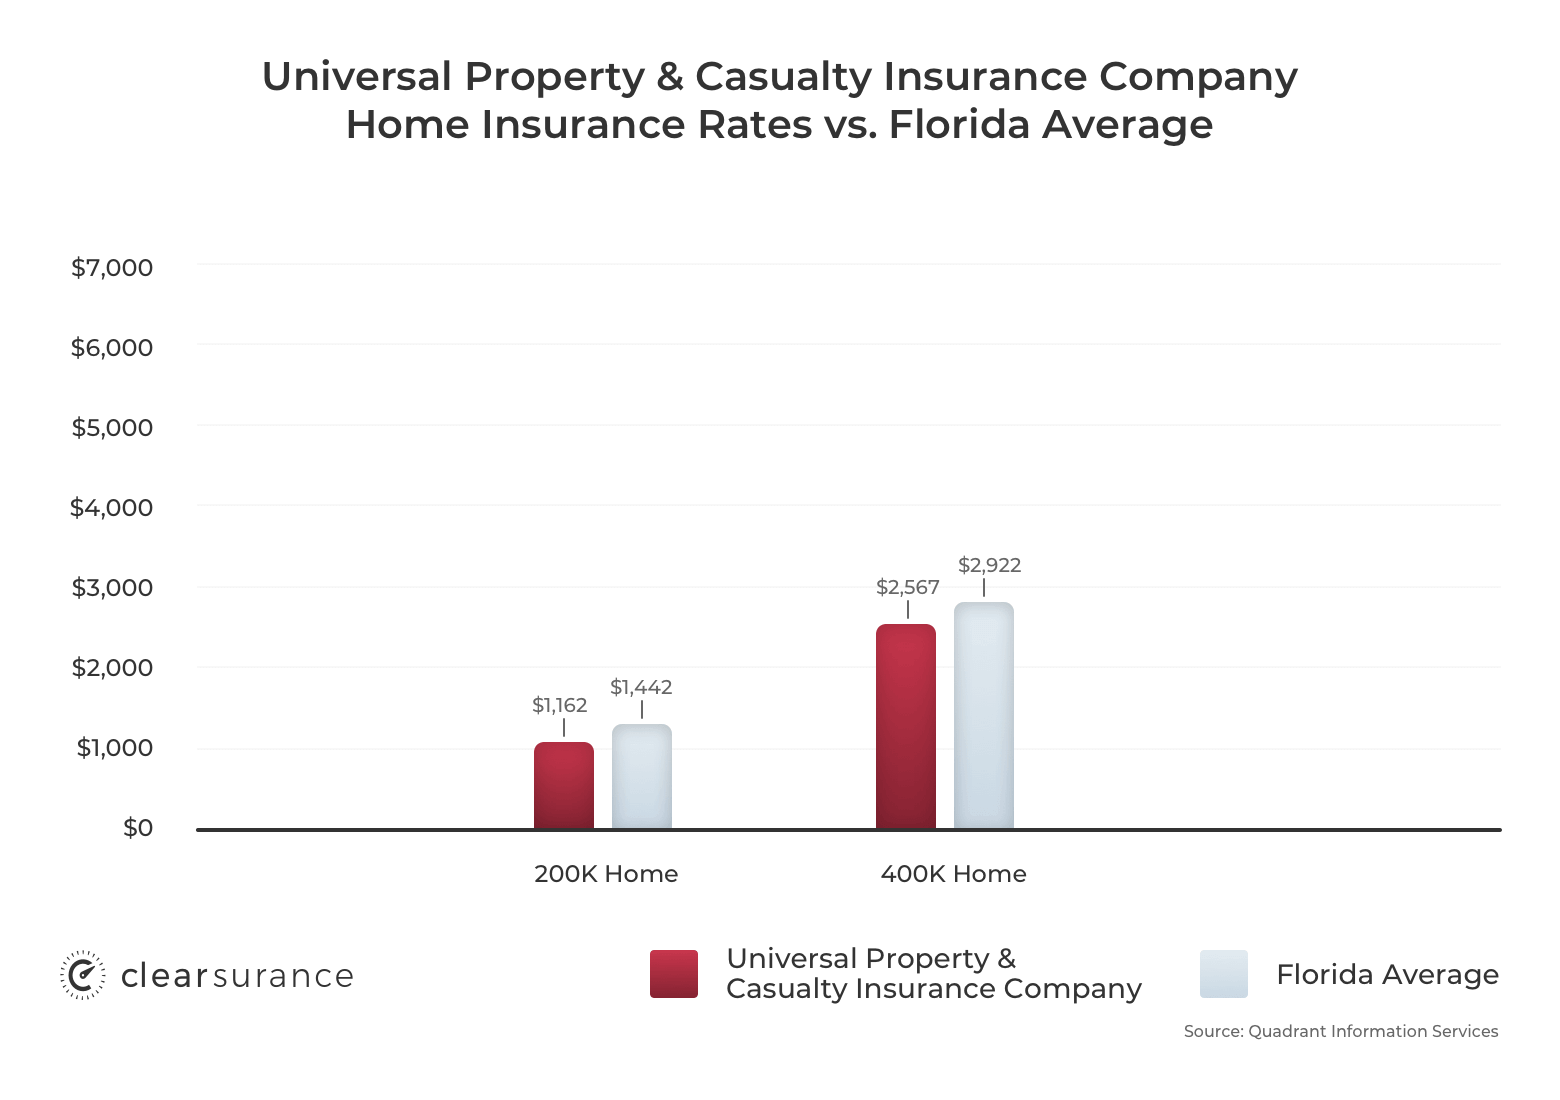 Universal Property & Casualty homeowners insurance rates